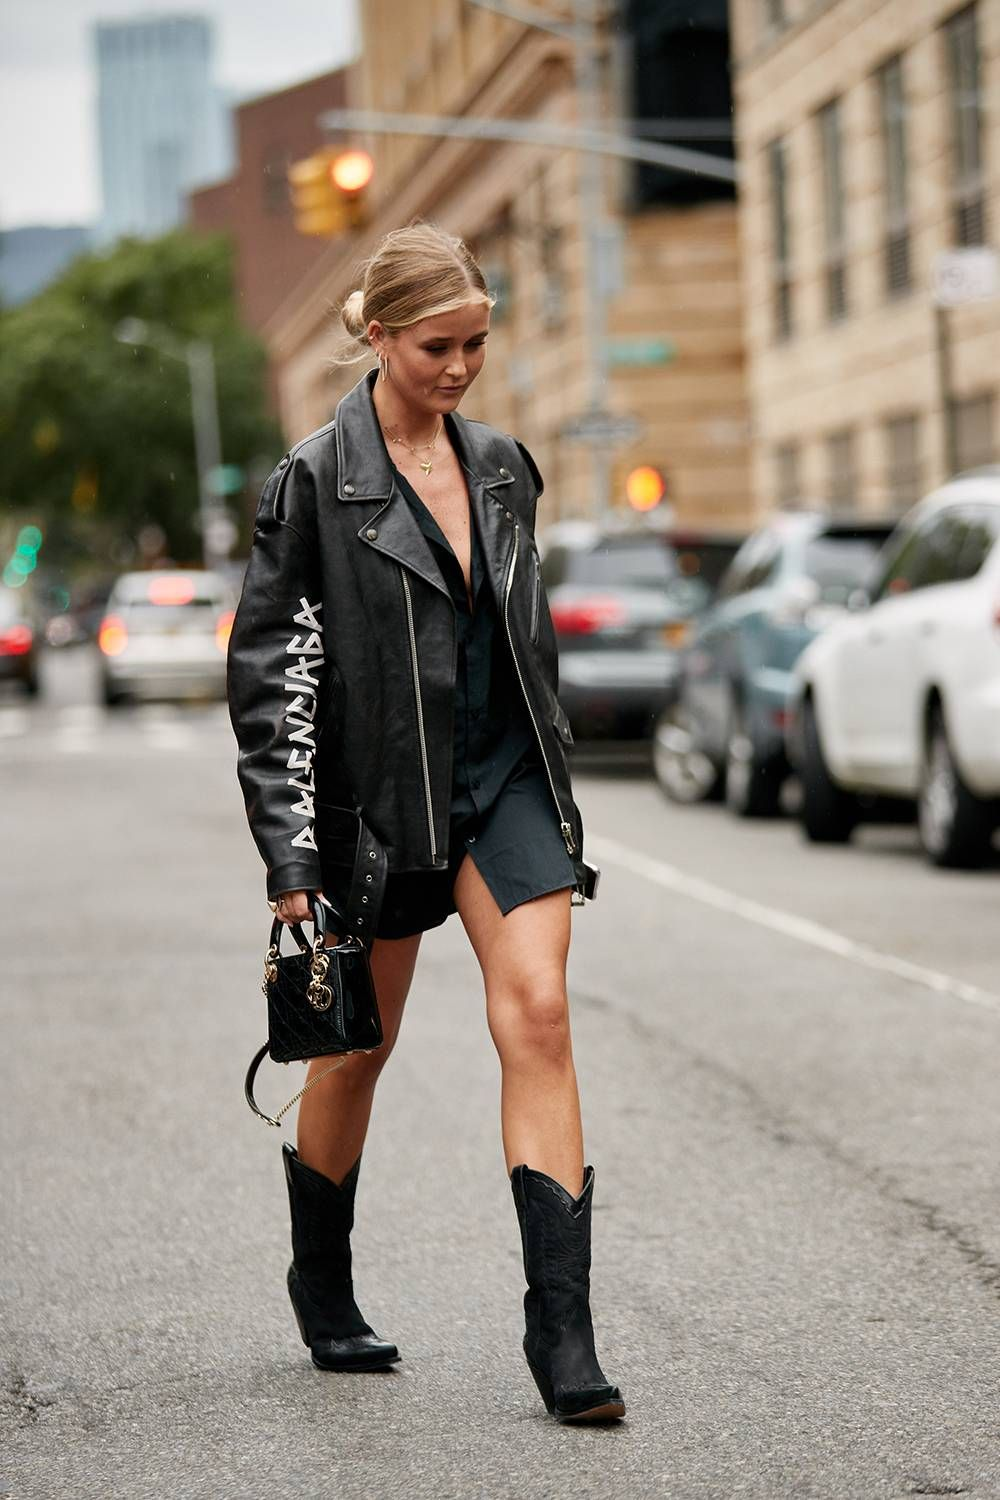 The Latest Street Style From New York Fashion Week #bohostreetstyle